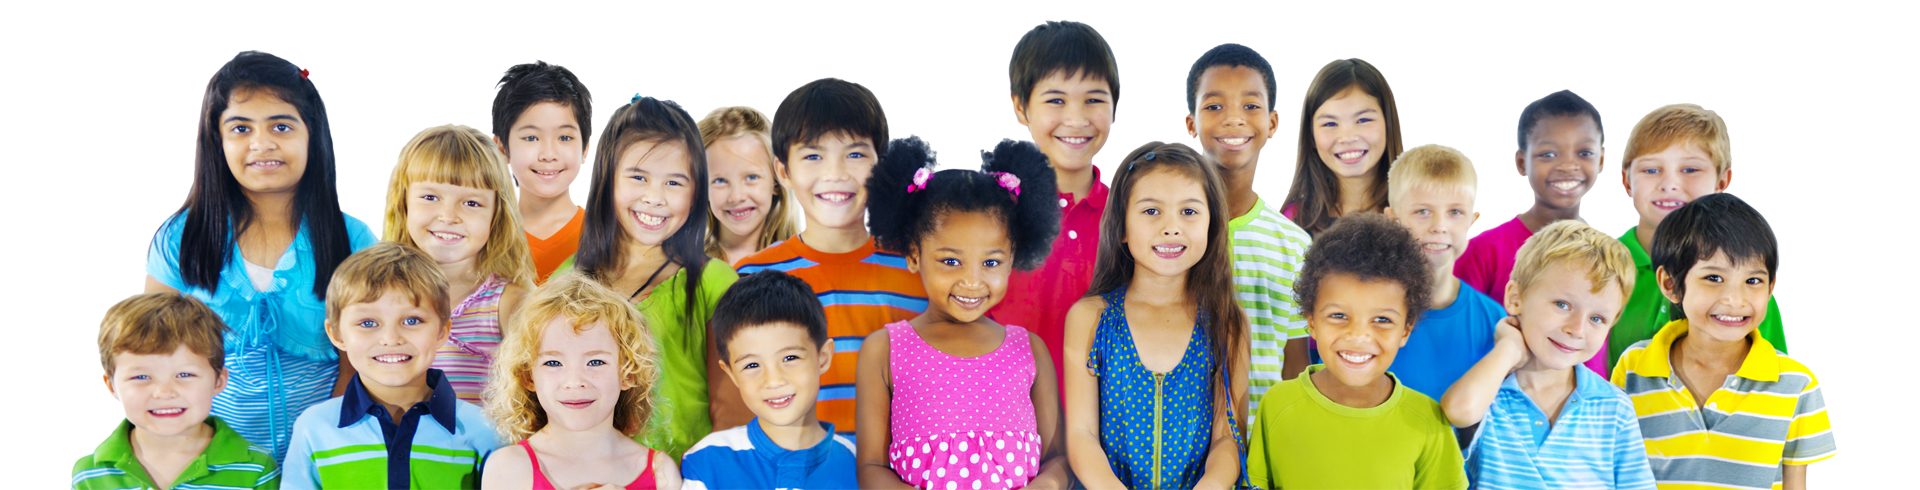 free medicaid orthodontic consultation exam for braces